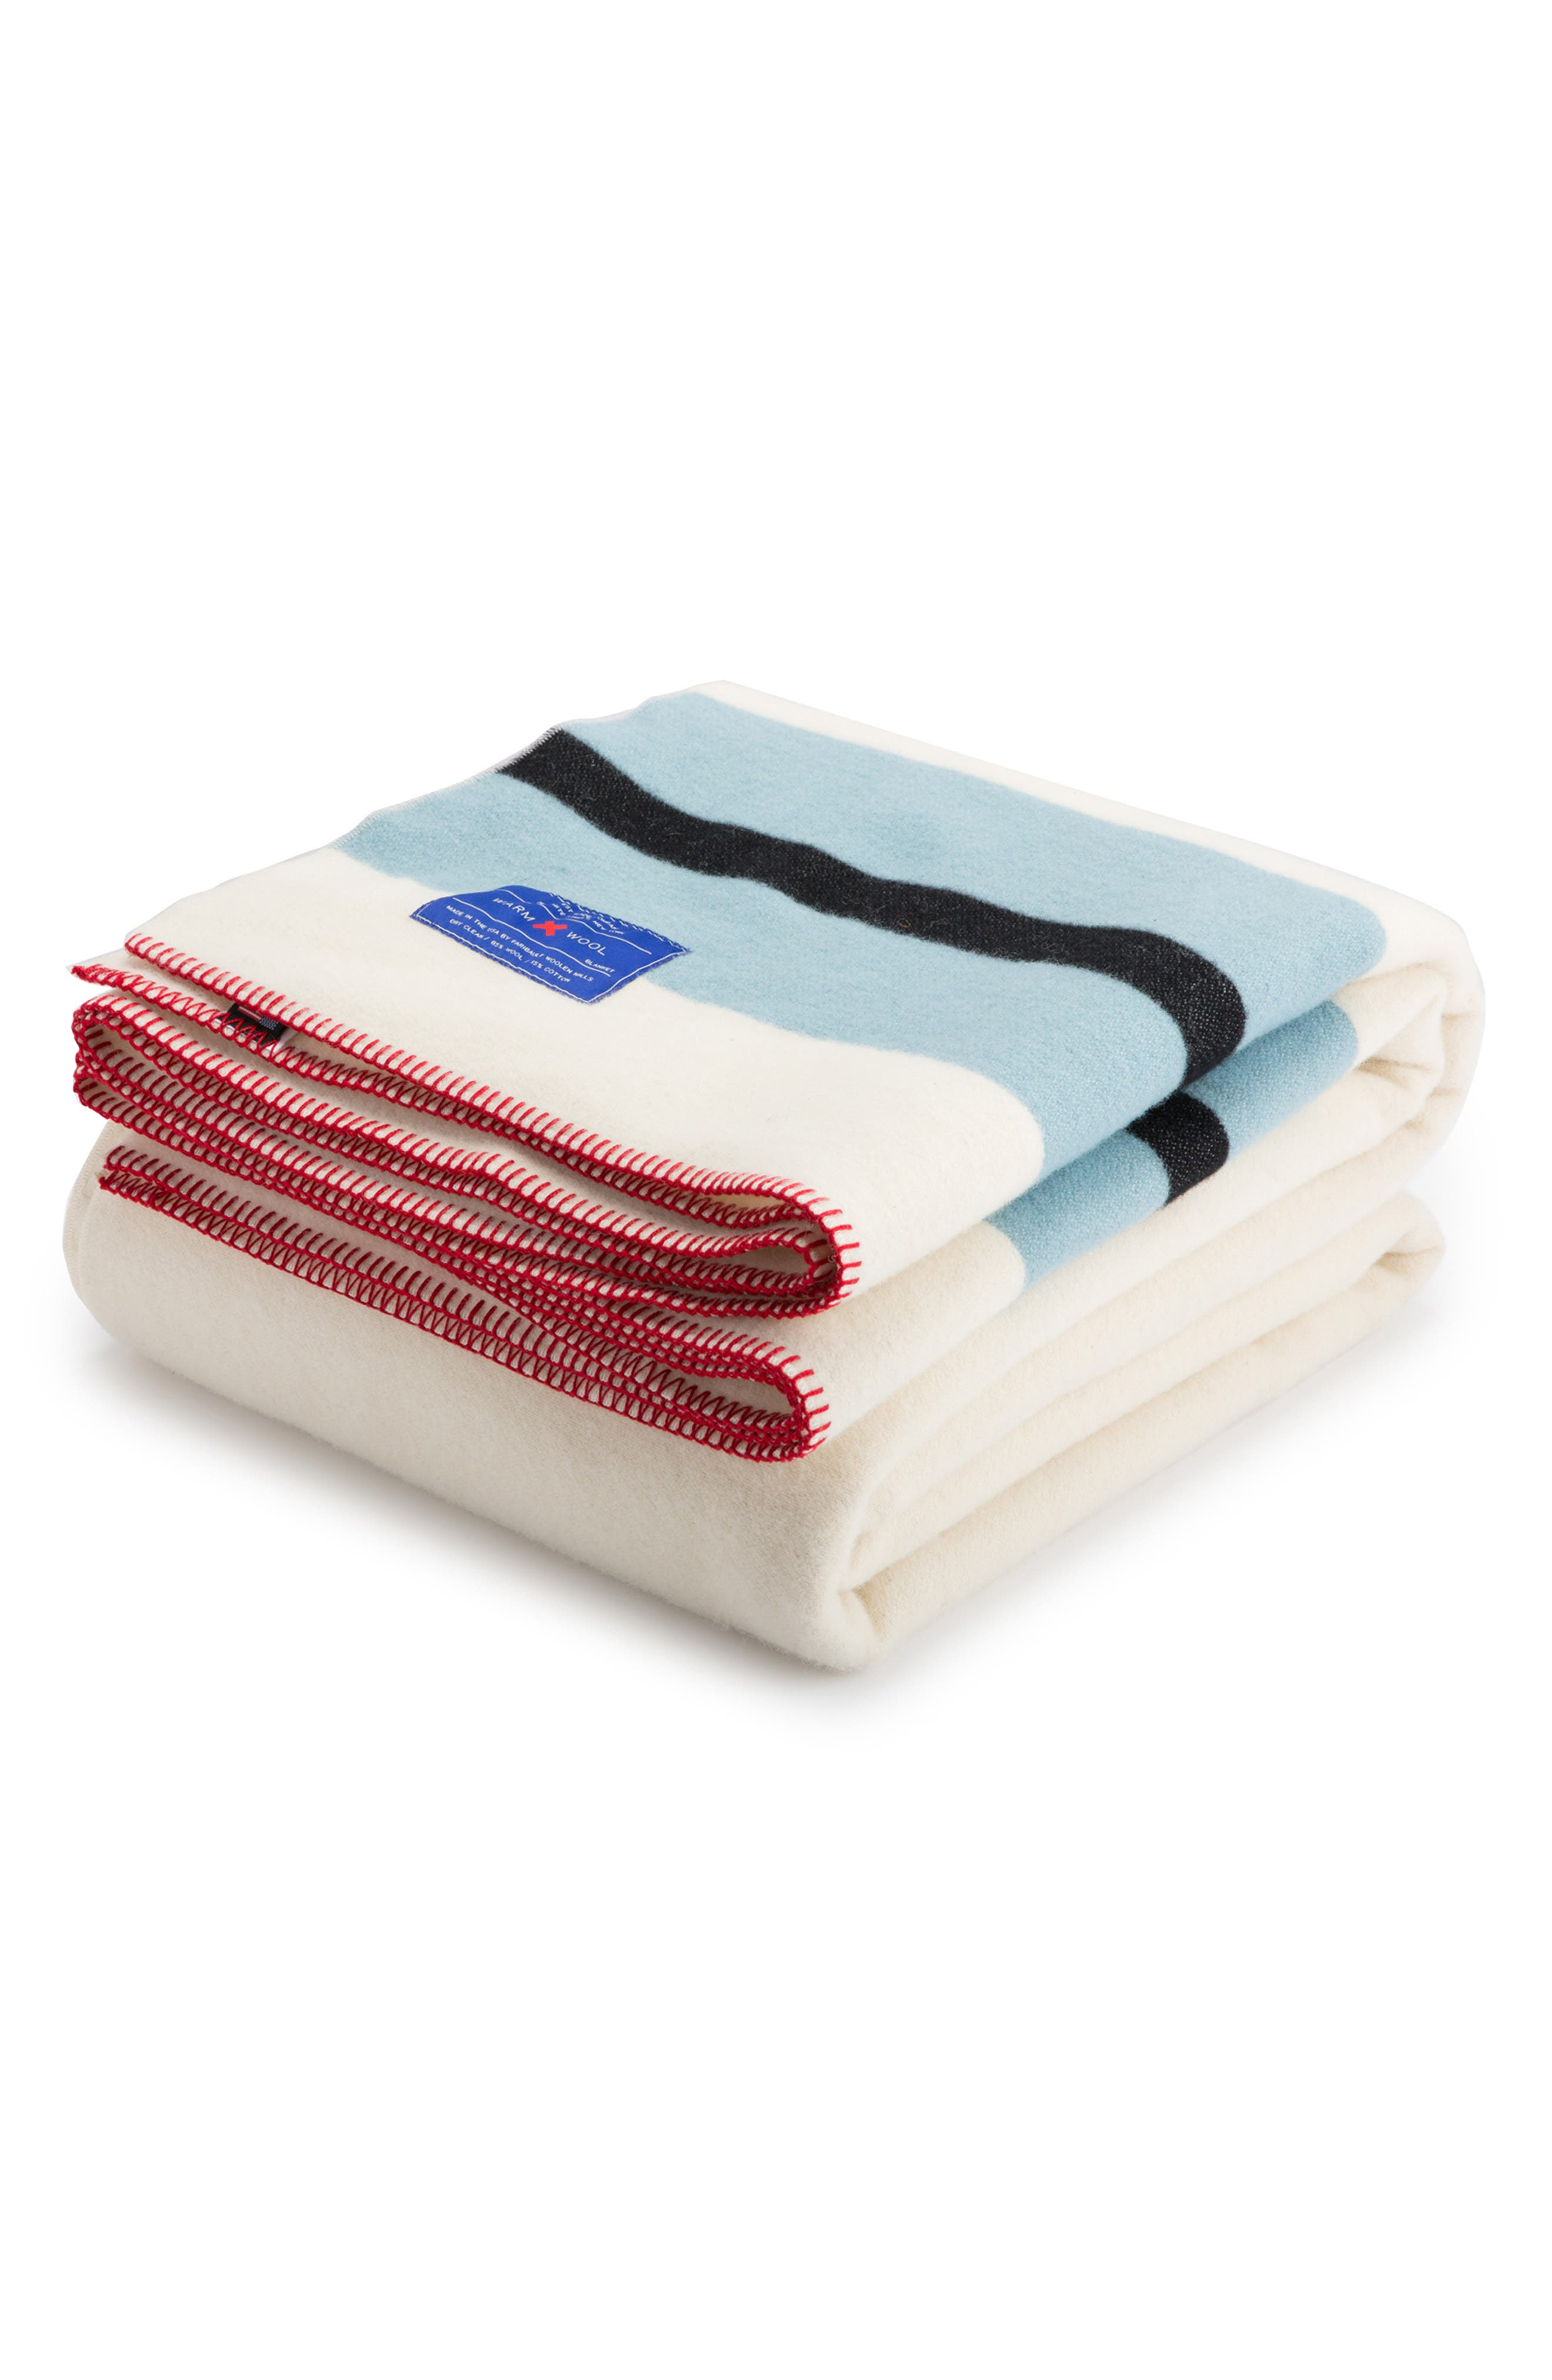 The Warm Wool Blend Blanket,                             Alternate thumbnail 6, color,                             WHITE/ BLUE/ RED